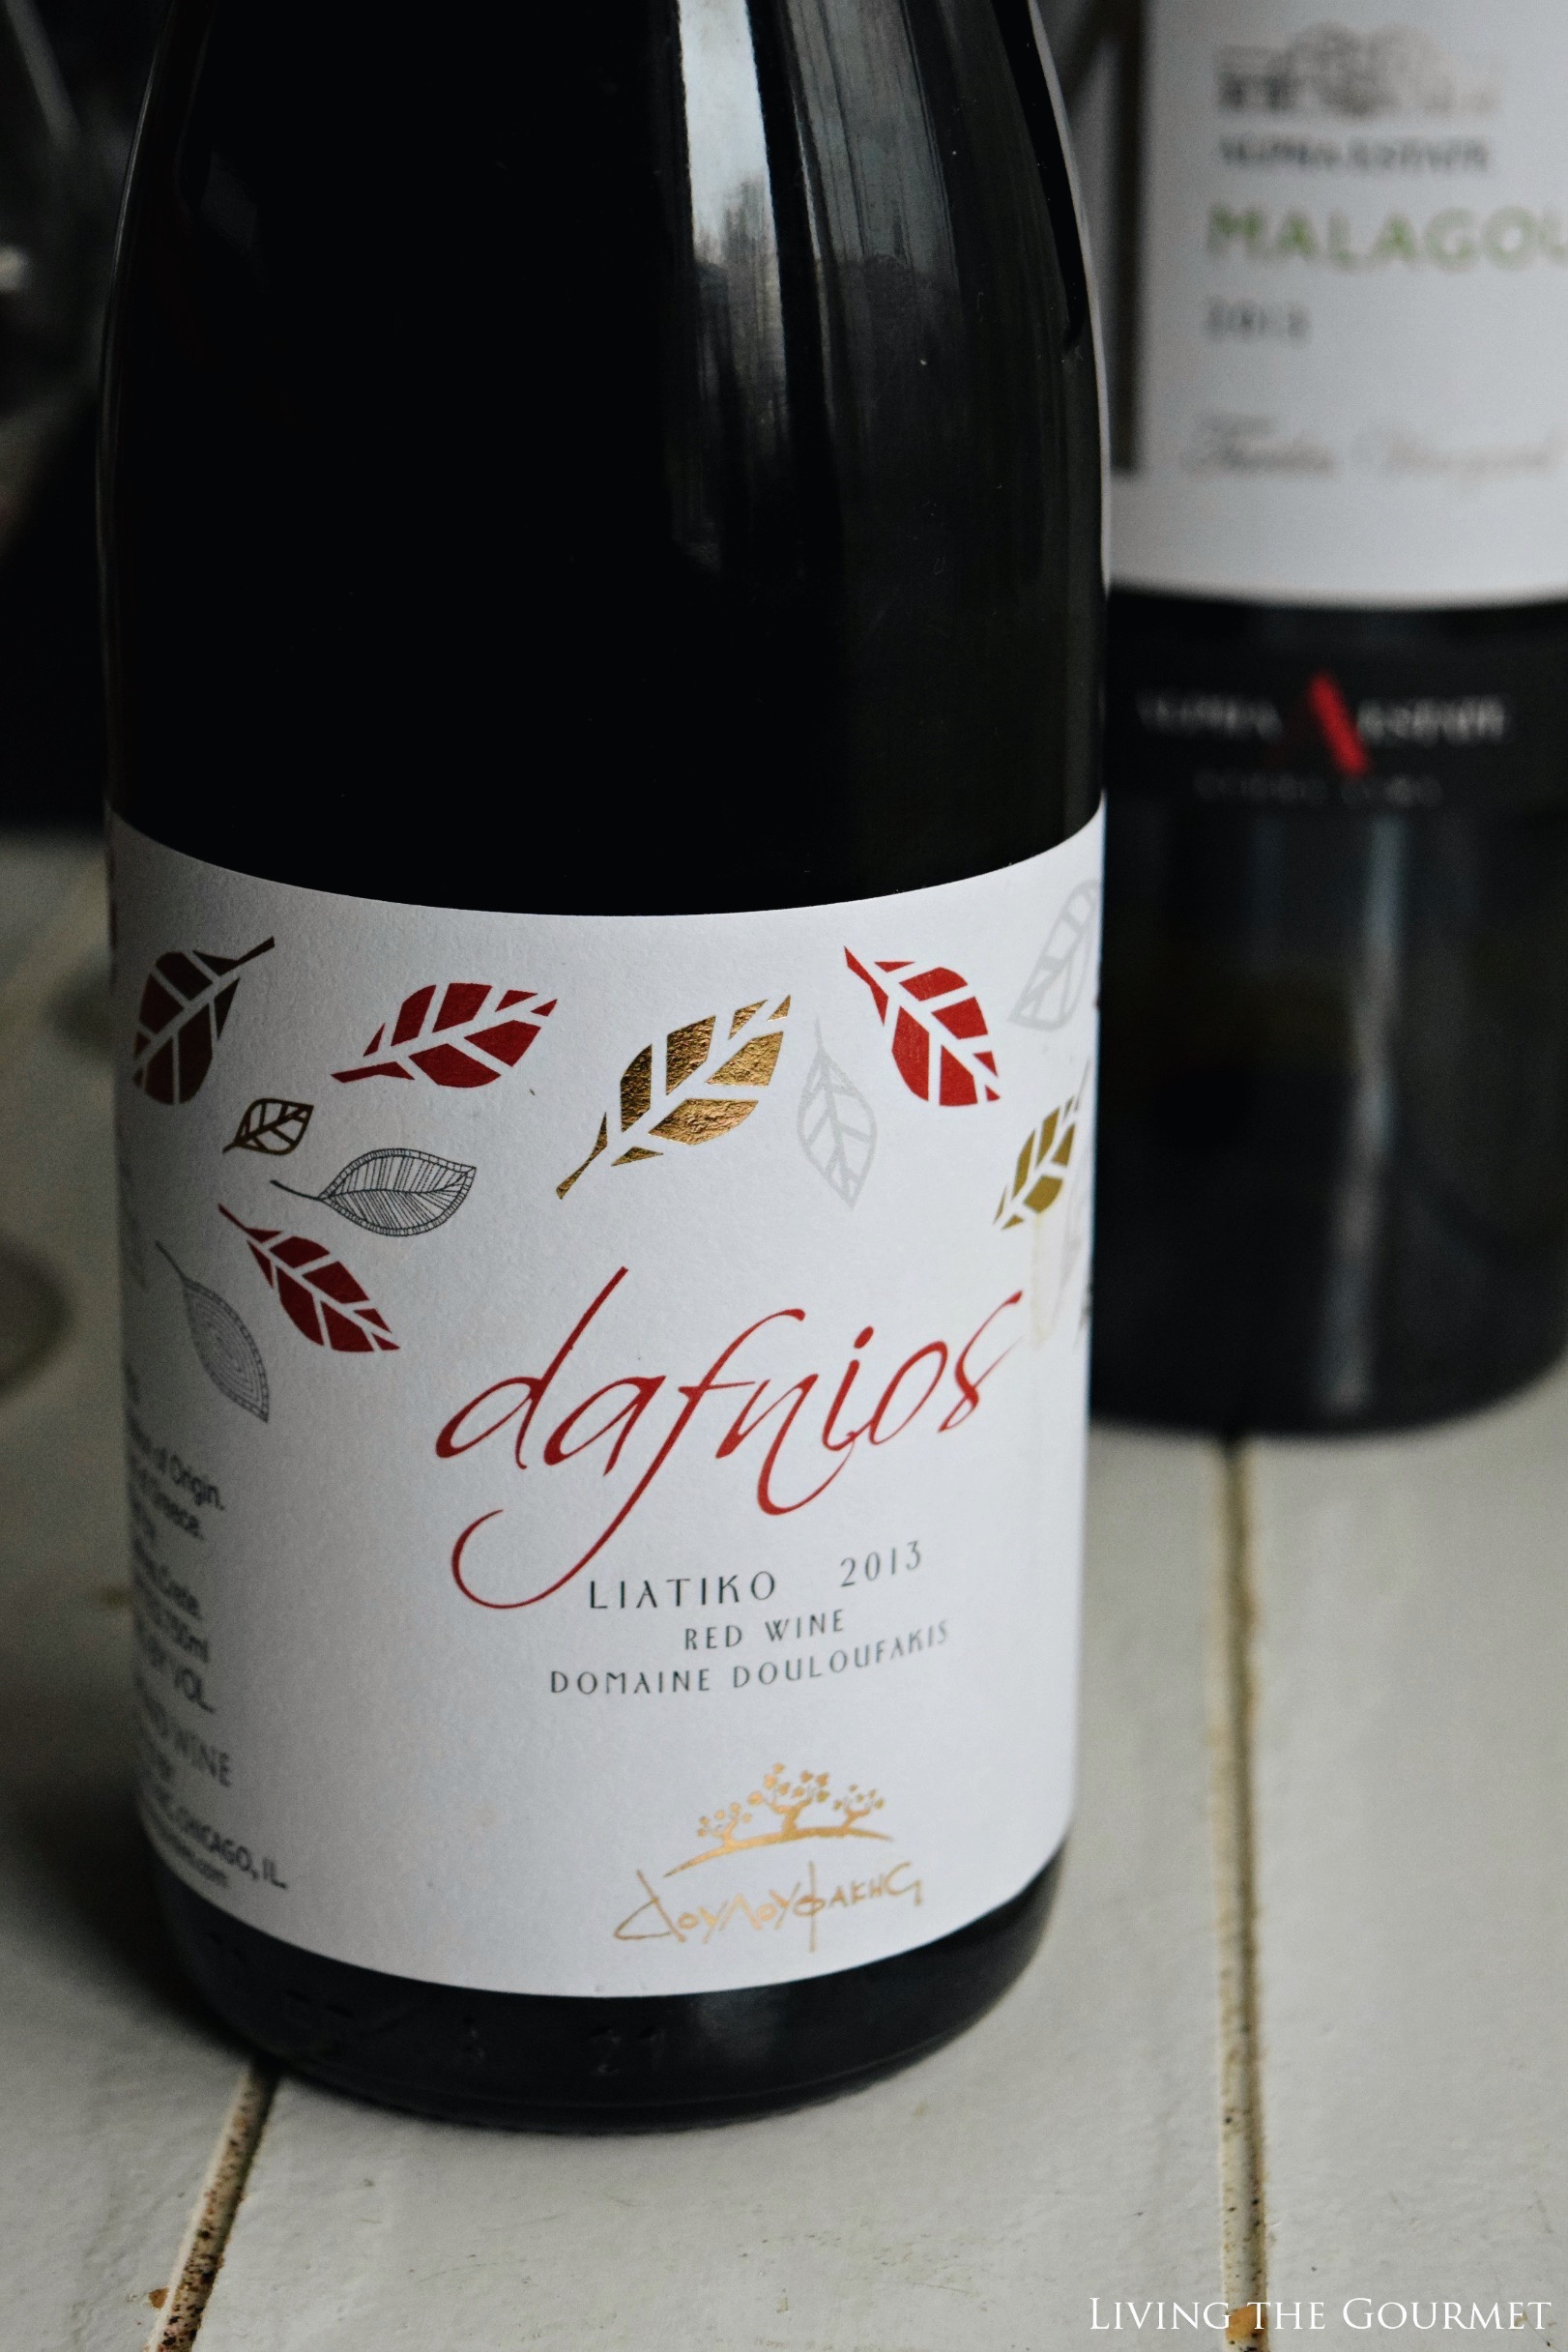 Living the Gourmet: Wines from Greece